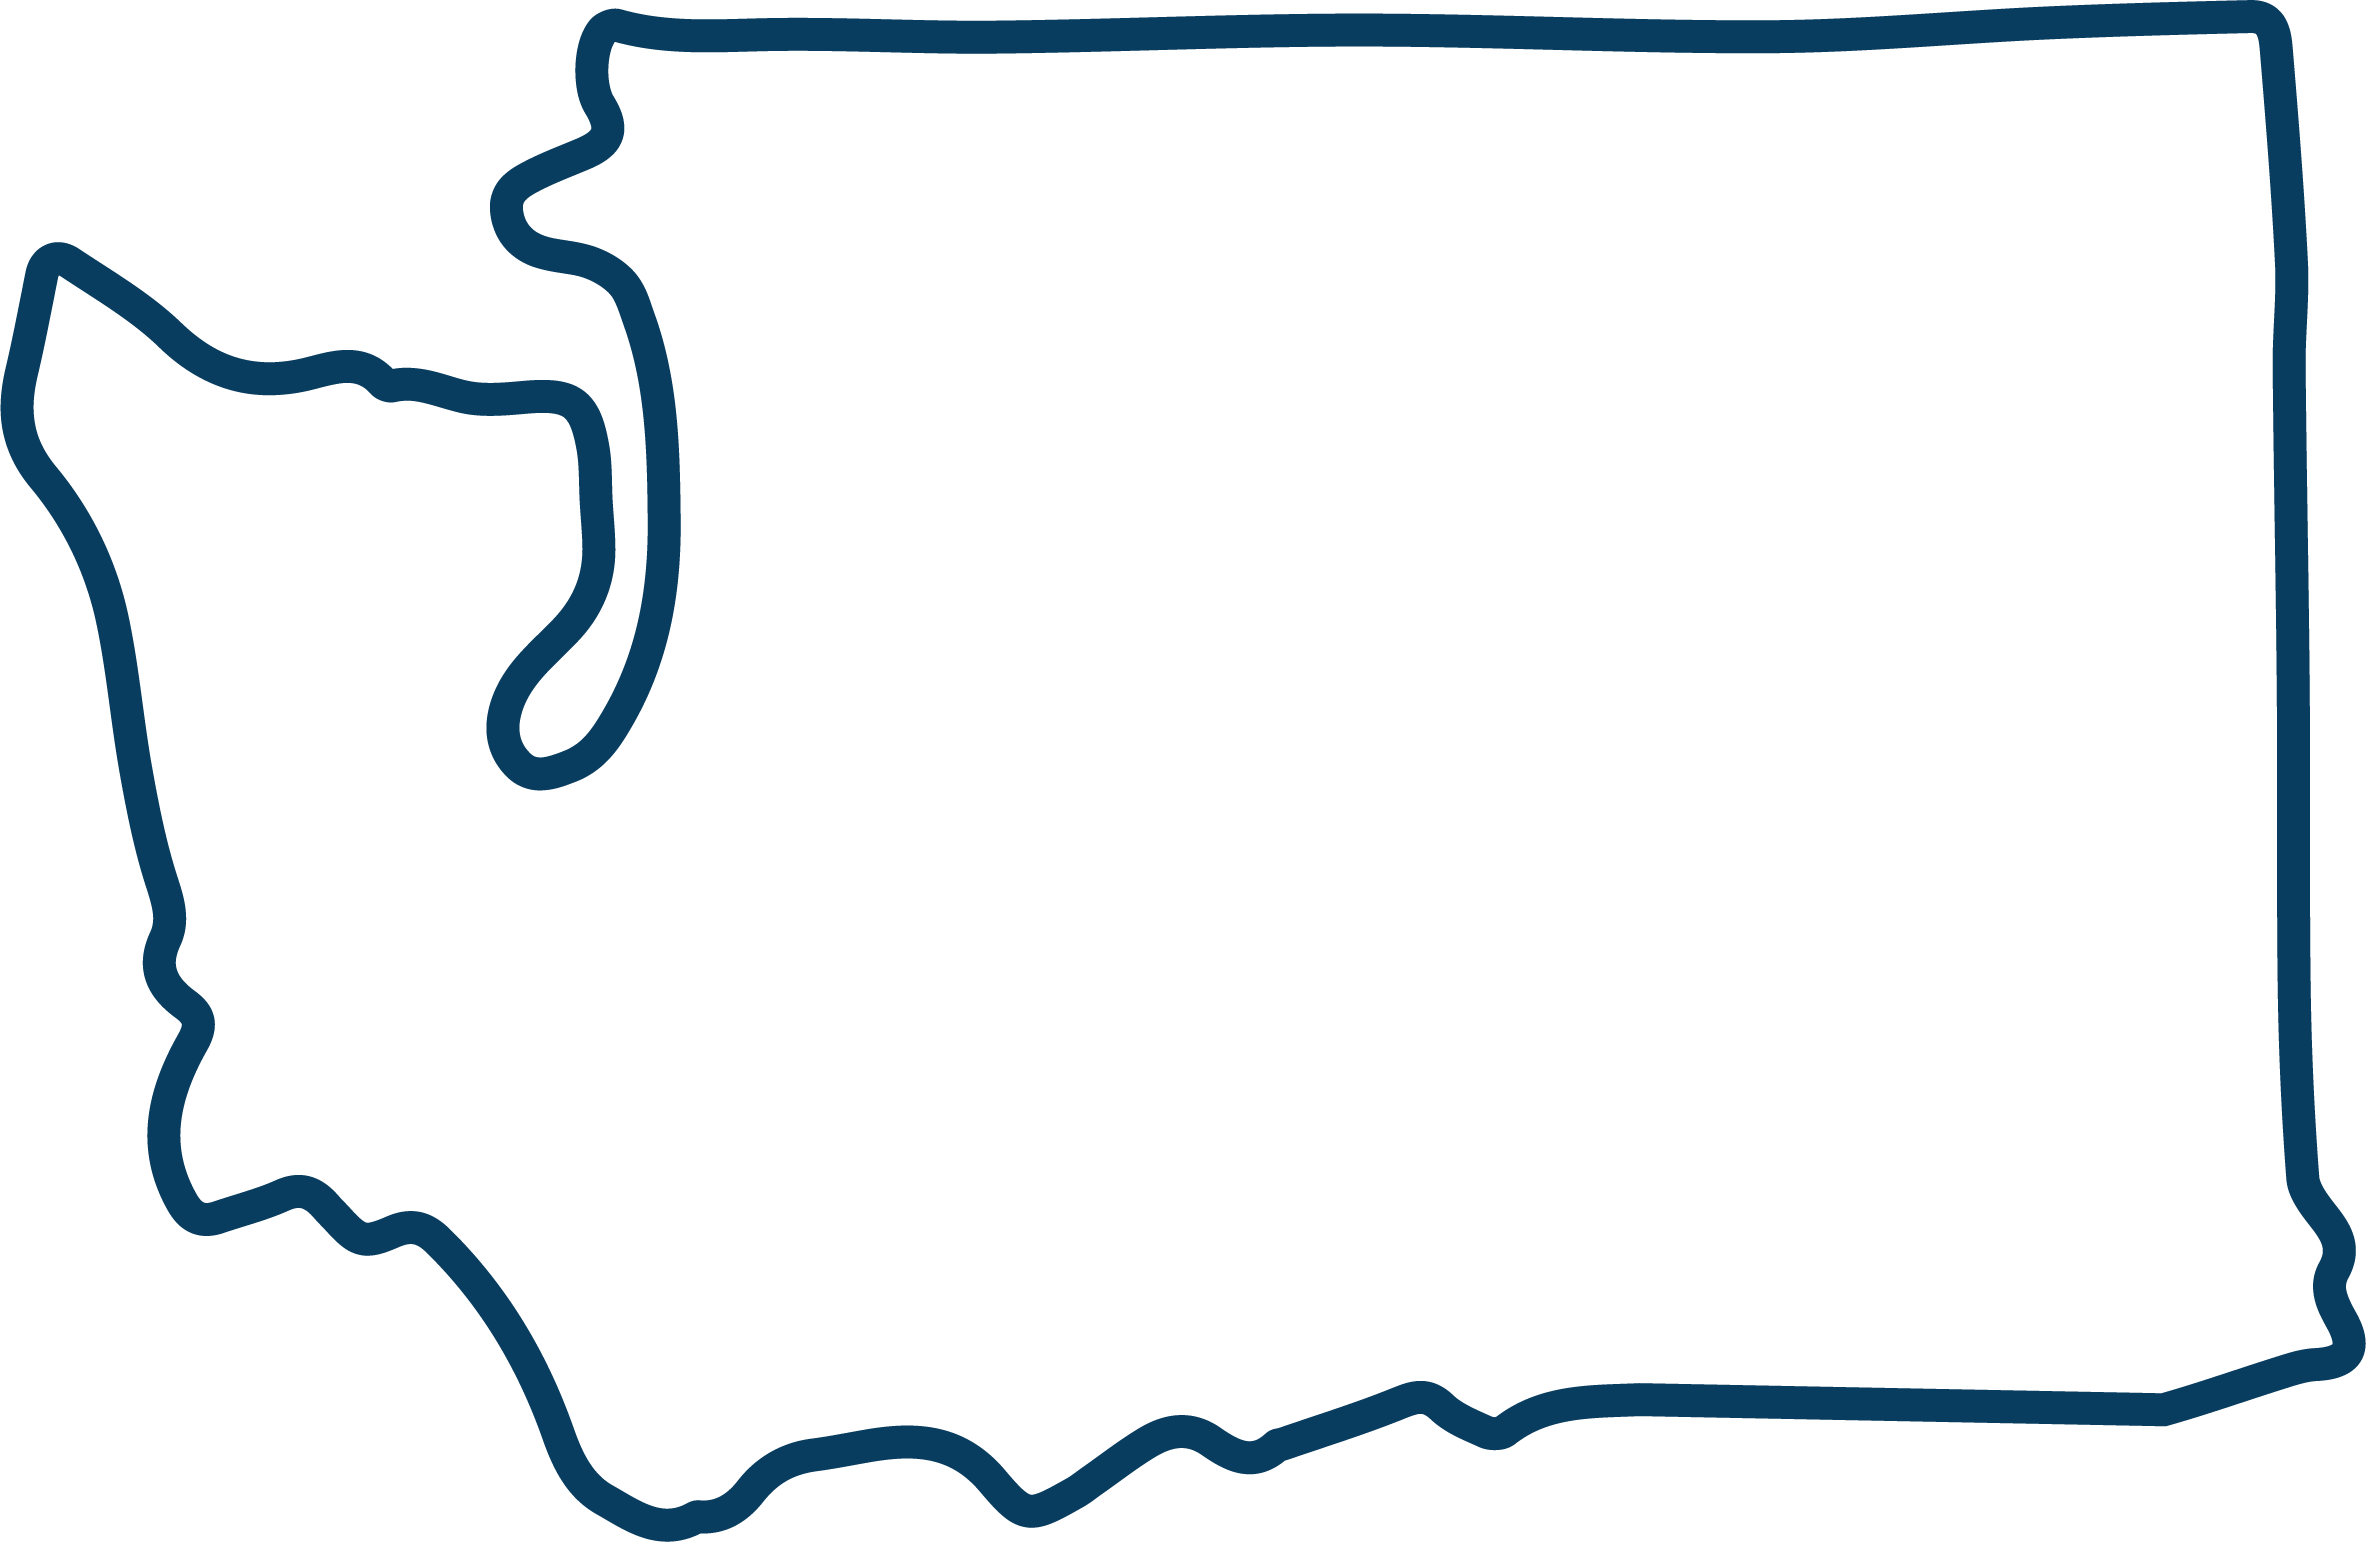 Washington_State_Outline_Blue2.png